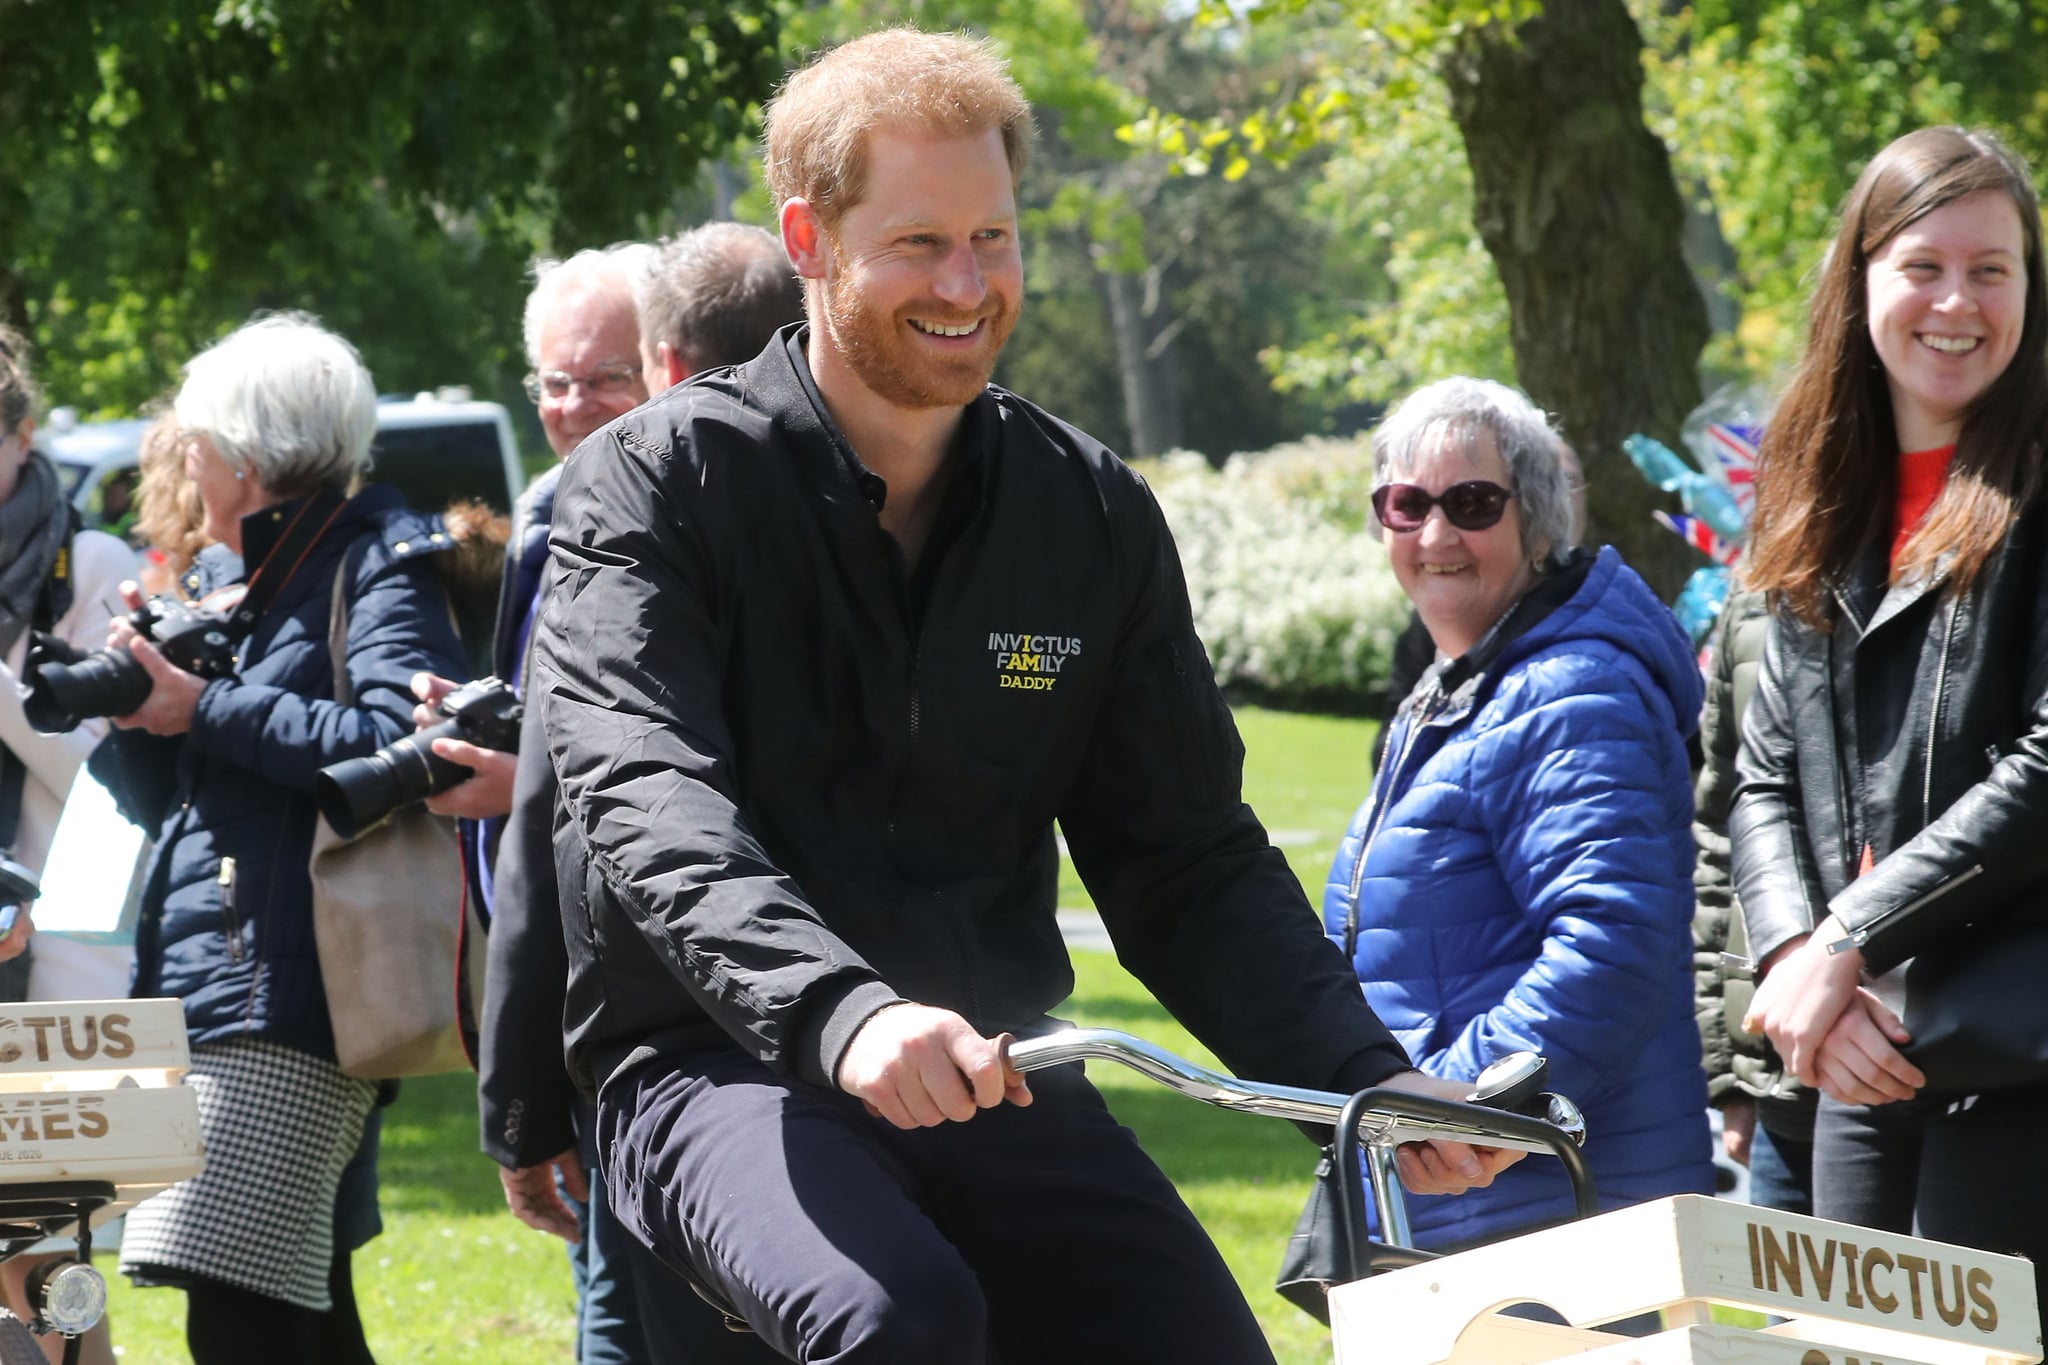 THE HAGUE, NETHERLANDS - MAY 09: Prince Harry, Duke of Sussex mounts a bike for the next part of the tour at Sportcampus Zuiderpark during a visit to The Hague as part of a programme of events to mark the official launch of the Invictus Games. HRH will spend time meeting potential competitors and their families, joining the Netherlands in celebrating what an exciting event The Hague 2020 will be. Prince Harry, Duke of Sussex founded the games in 2014 in which wounded veterans compete in an array of sporting events on May 09, 2019 in The Hague, Netherlands. (Photo by Chris Jackson/Getty Images)